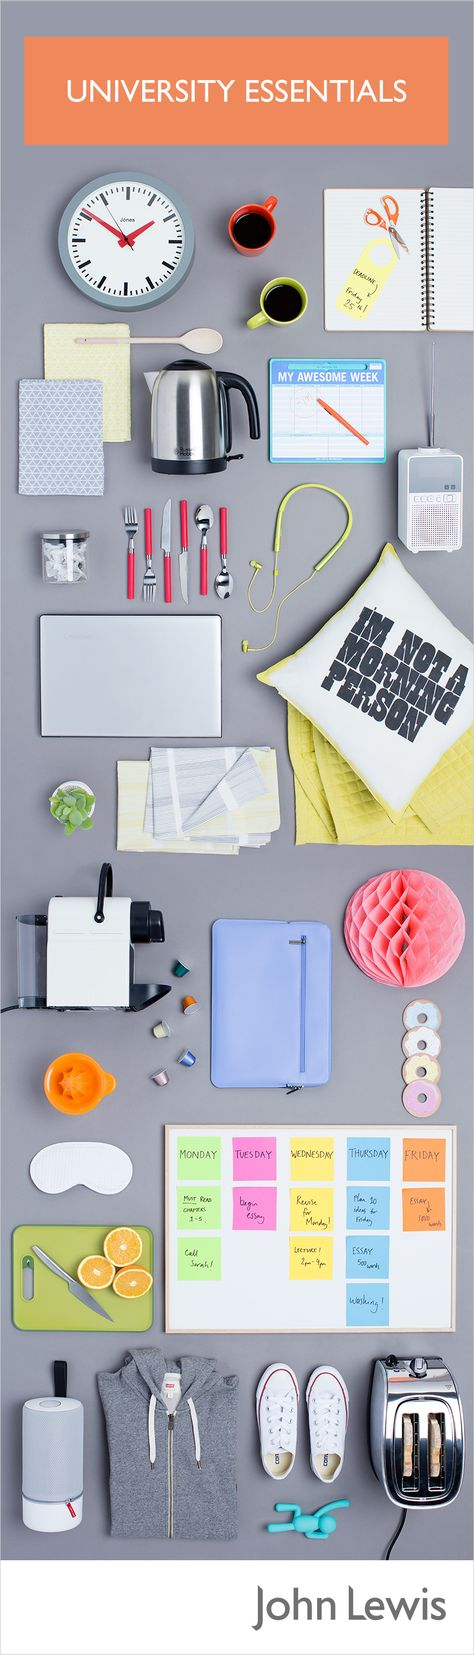 Prepare for student life with our University Essentials – we've collected everything you'll need for work, rest and play. From printers and pans to laptops and lamps, we have everything you need to get a head start at University, as well as those little luxuries that make a room feel like home.